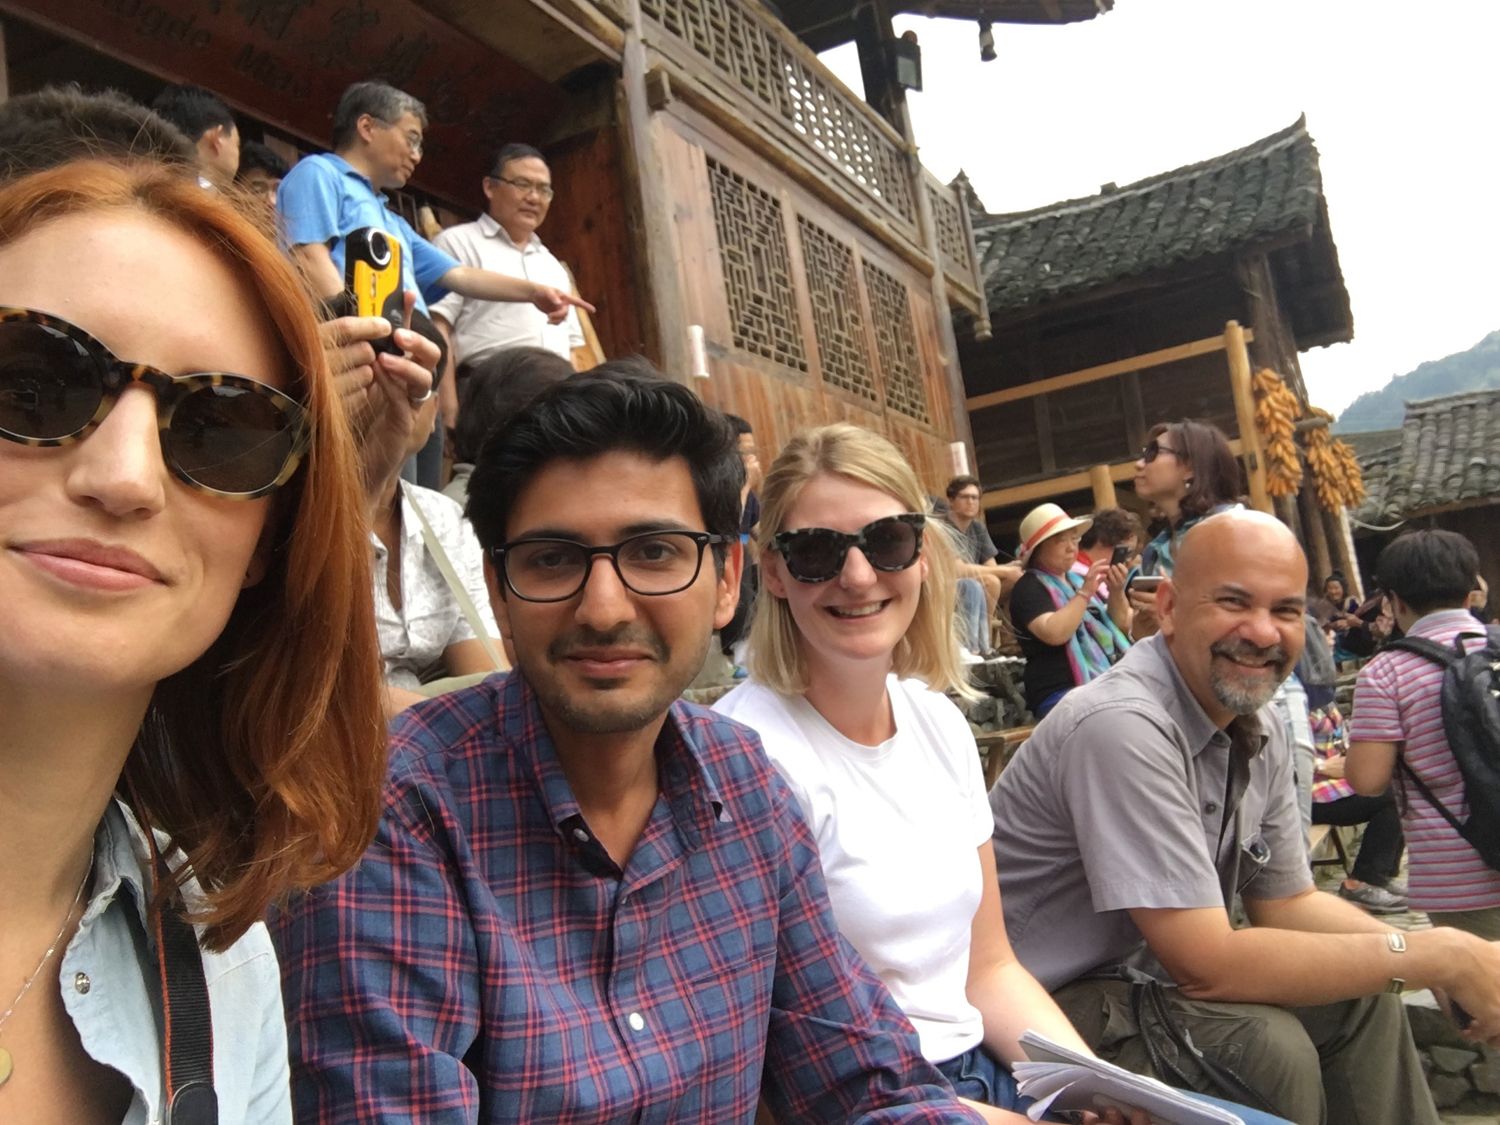 Samantha Hayes and fellow Jefferson Fellowship participants sitting outside with a traditional Chinese building behind them